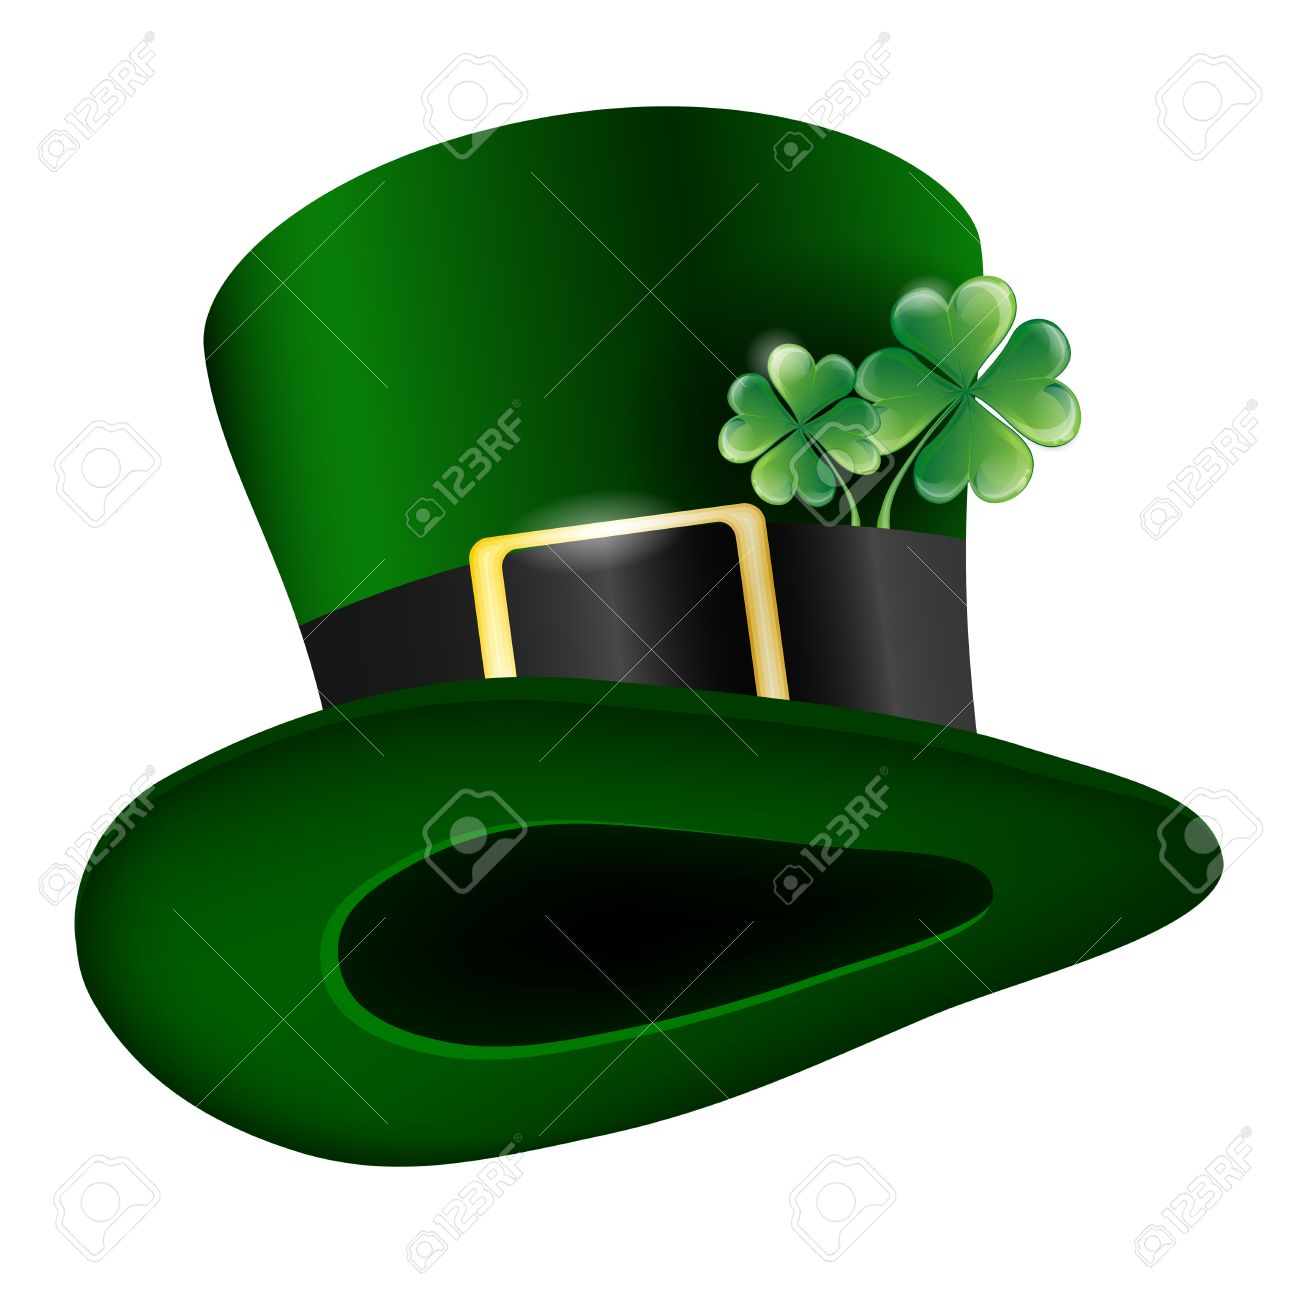 green hat with clover leafs - Saint Patricks Day symbol Stock Vector - 16533416